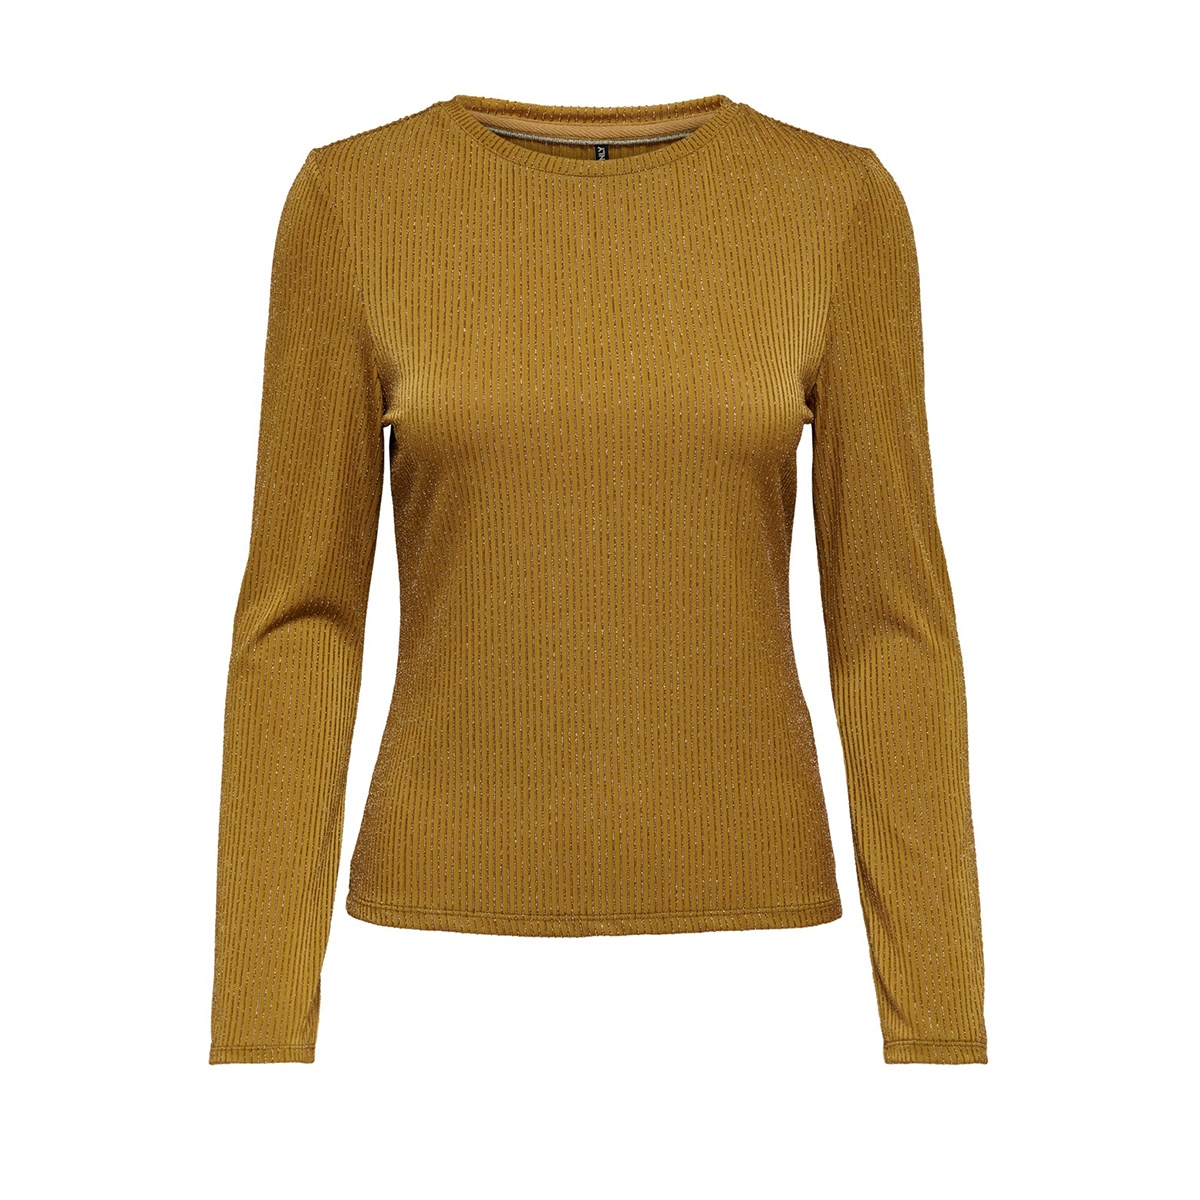 onlcosmo l/s glitter top jrs 15189750 only t-shirt tapenade